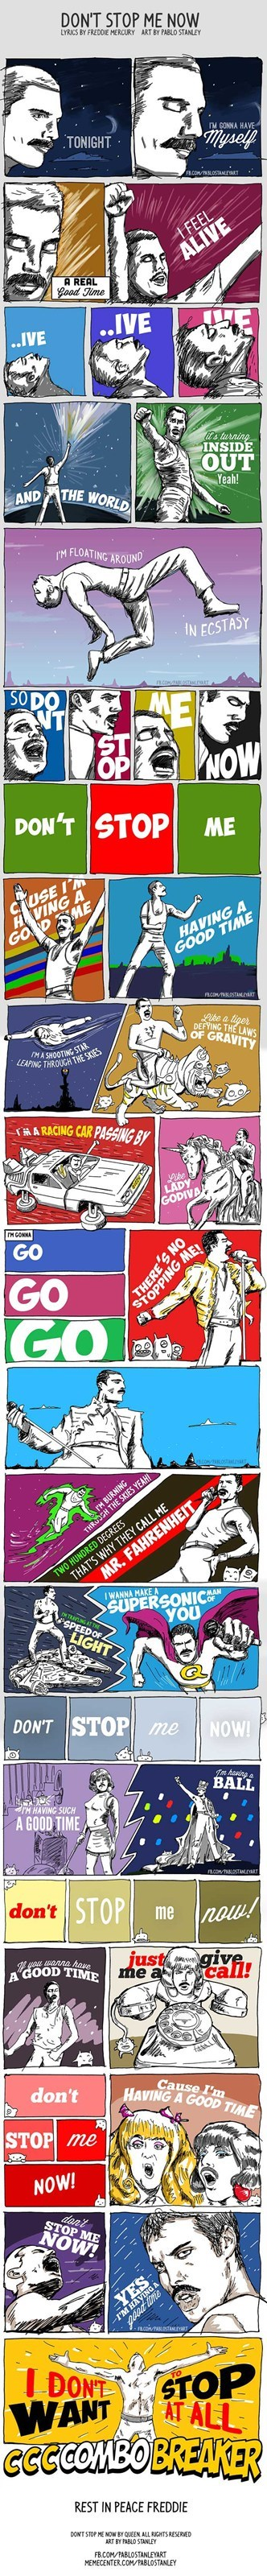 queen freddie mercury comic dont-stop-me-now Music FAILS g rated Hall of Fame best of week